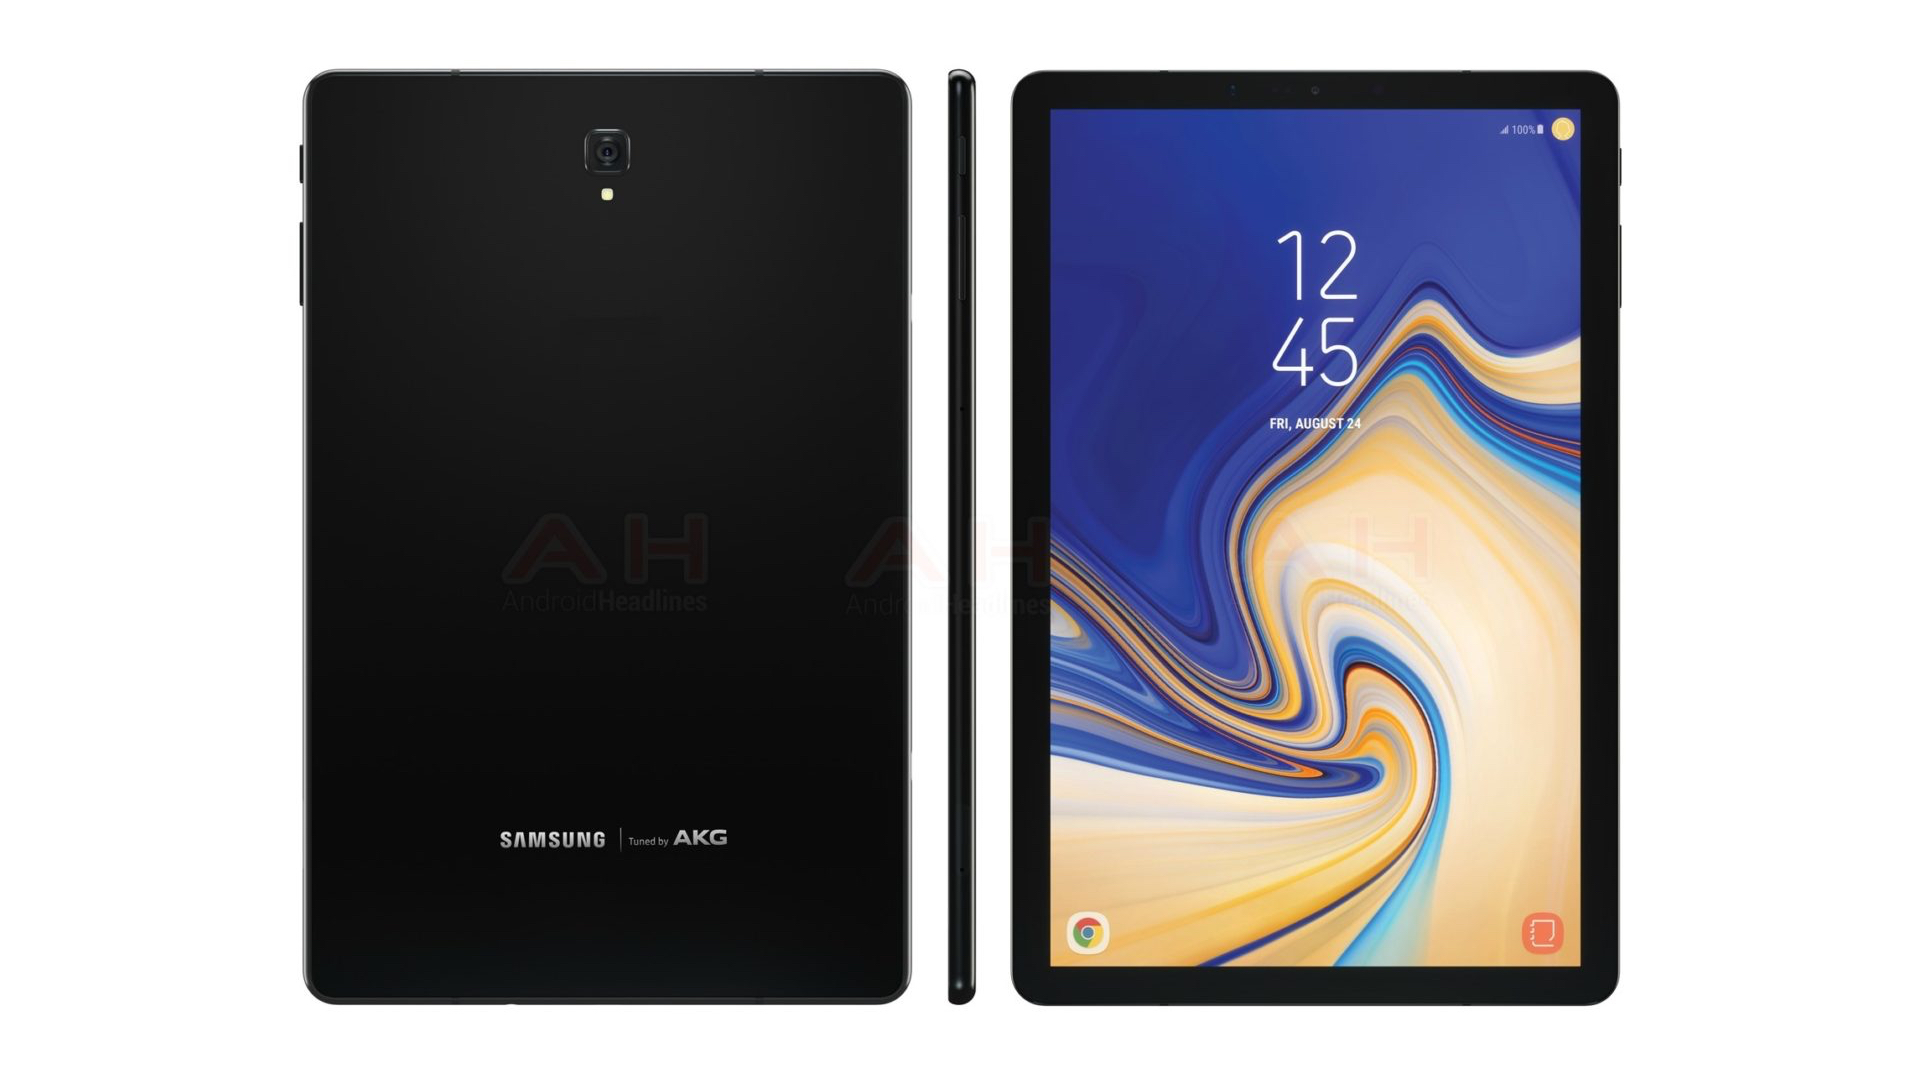 samsung galaxy tab s4 stereopoly. Black Bedroom Furniture Sets. Home Design Ideas